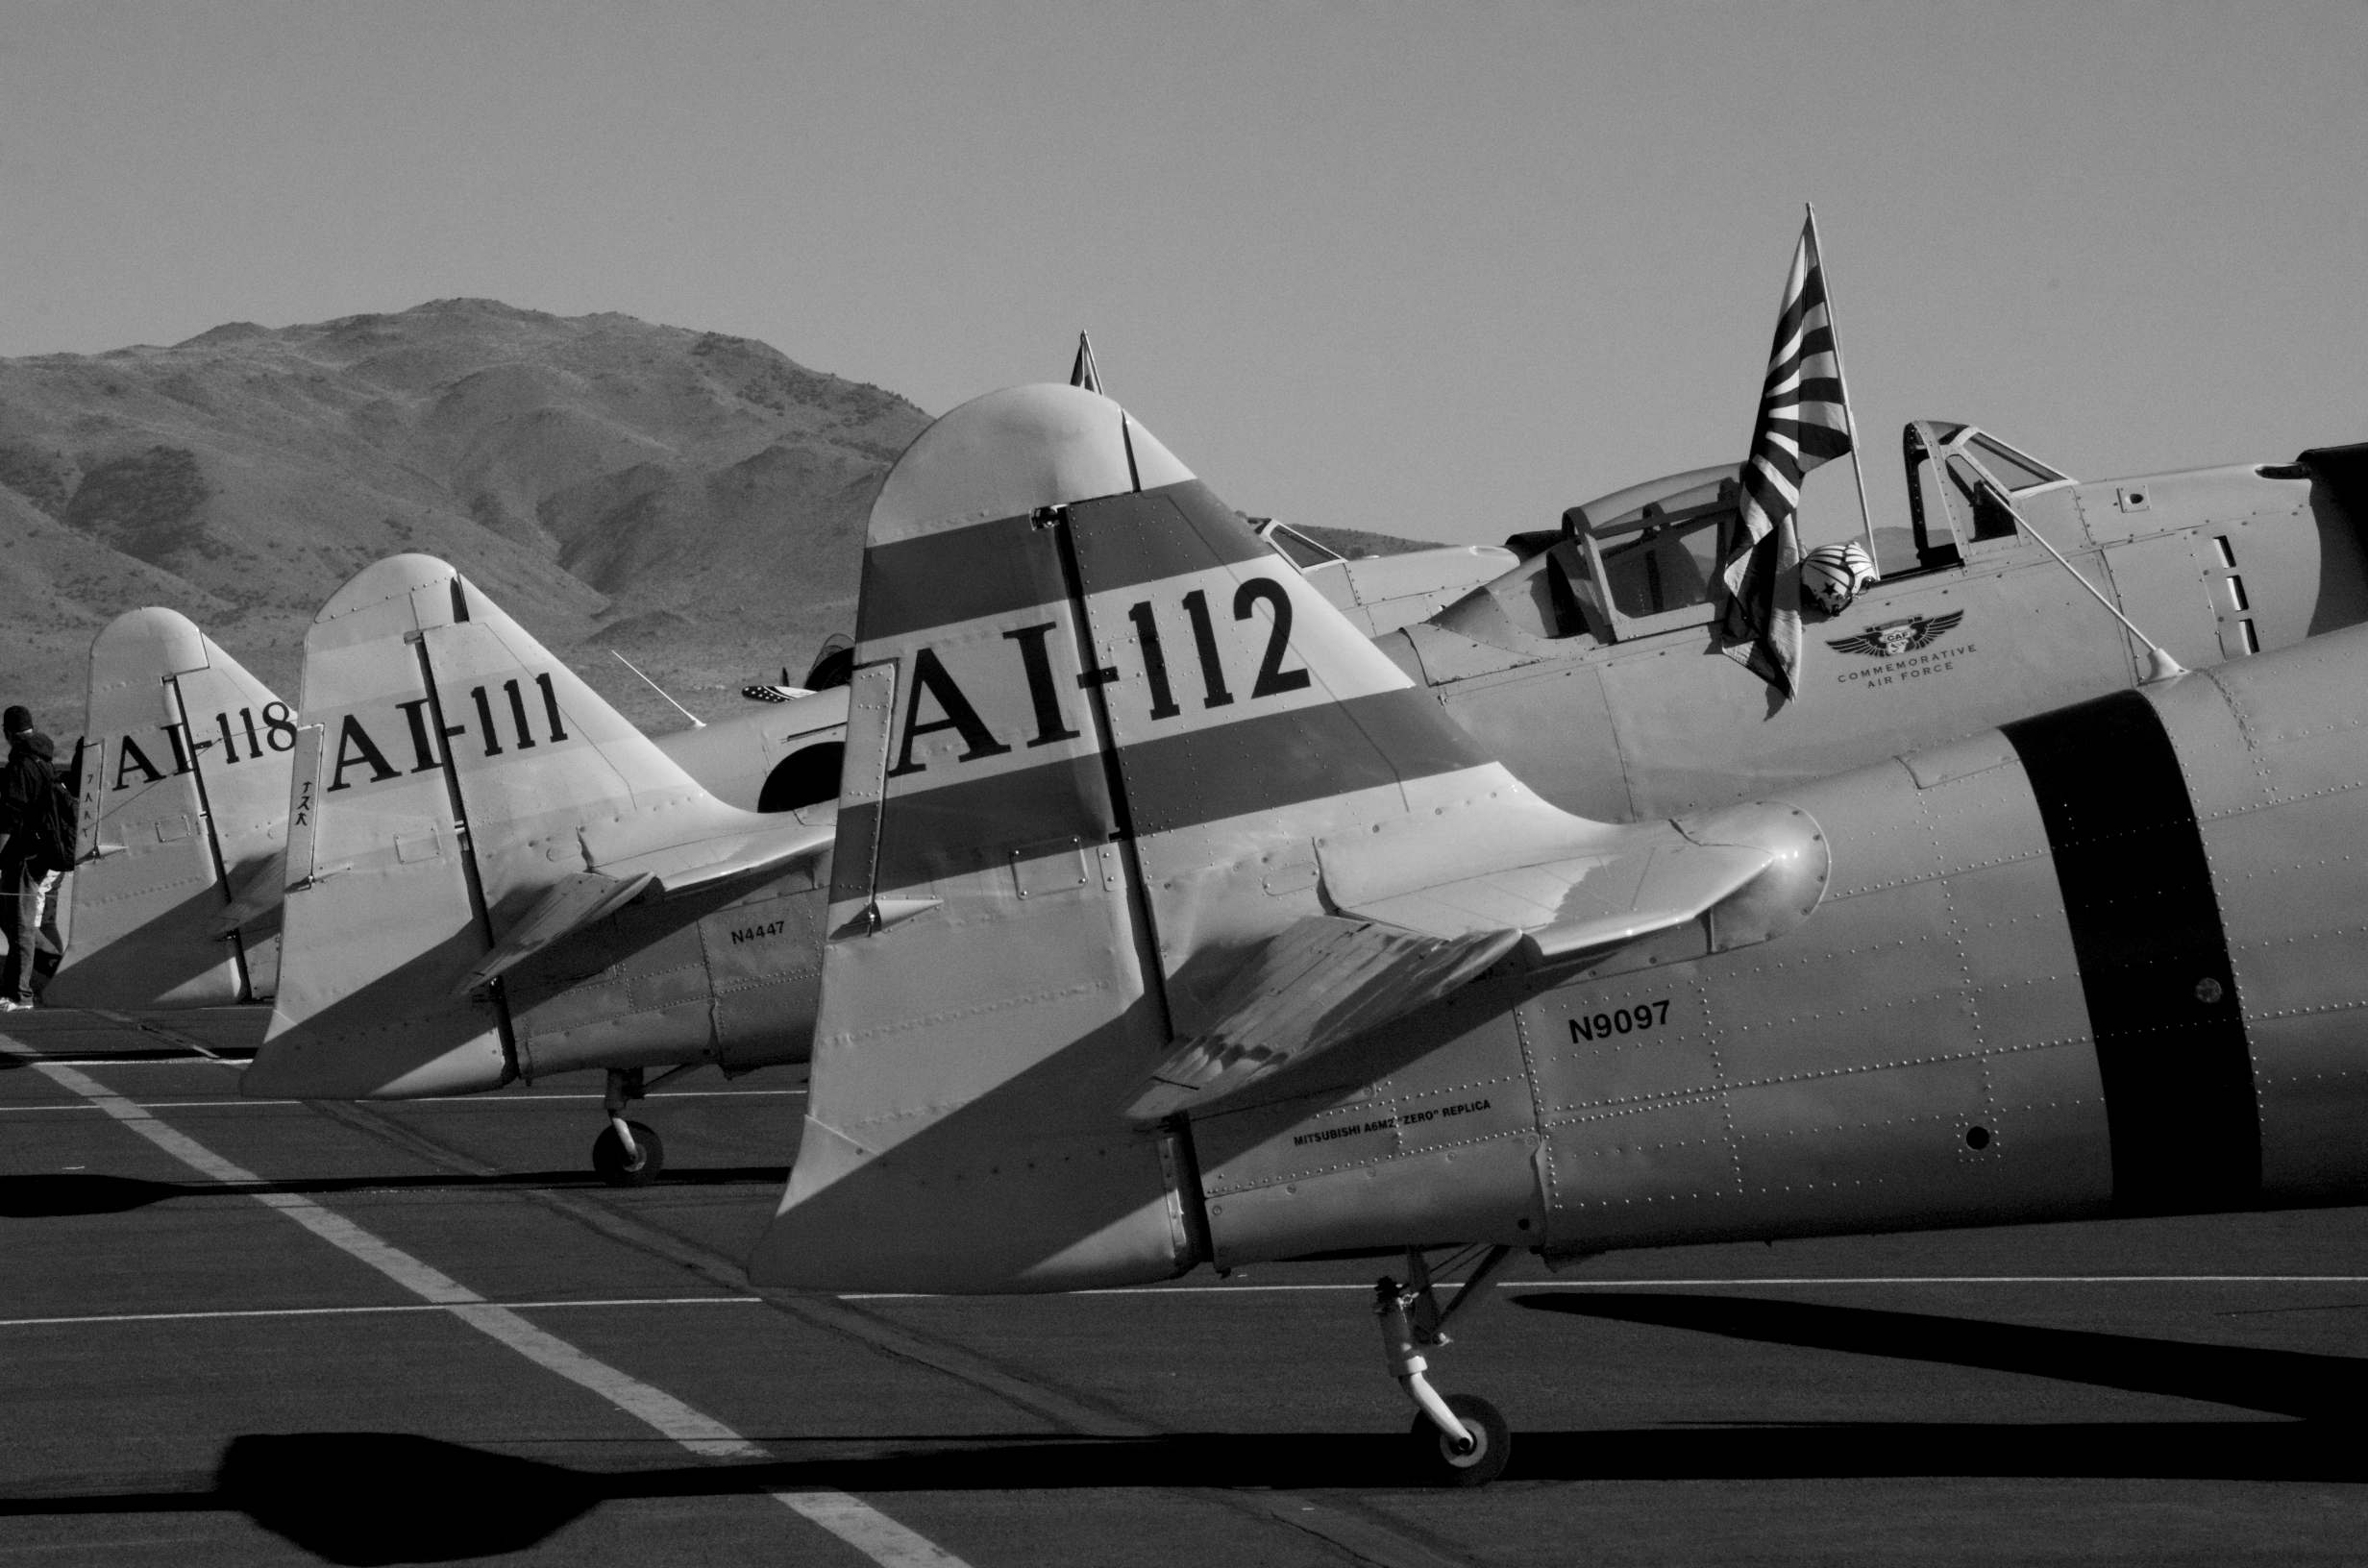 Commemorative Air Force,  Reno Stead Airport, National Championship Air Races 2015